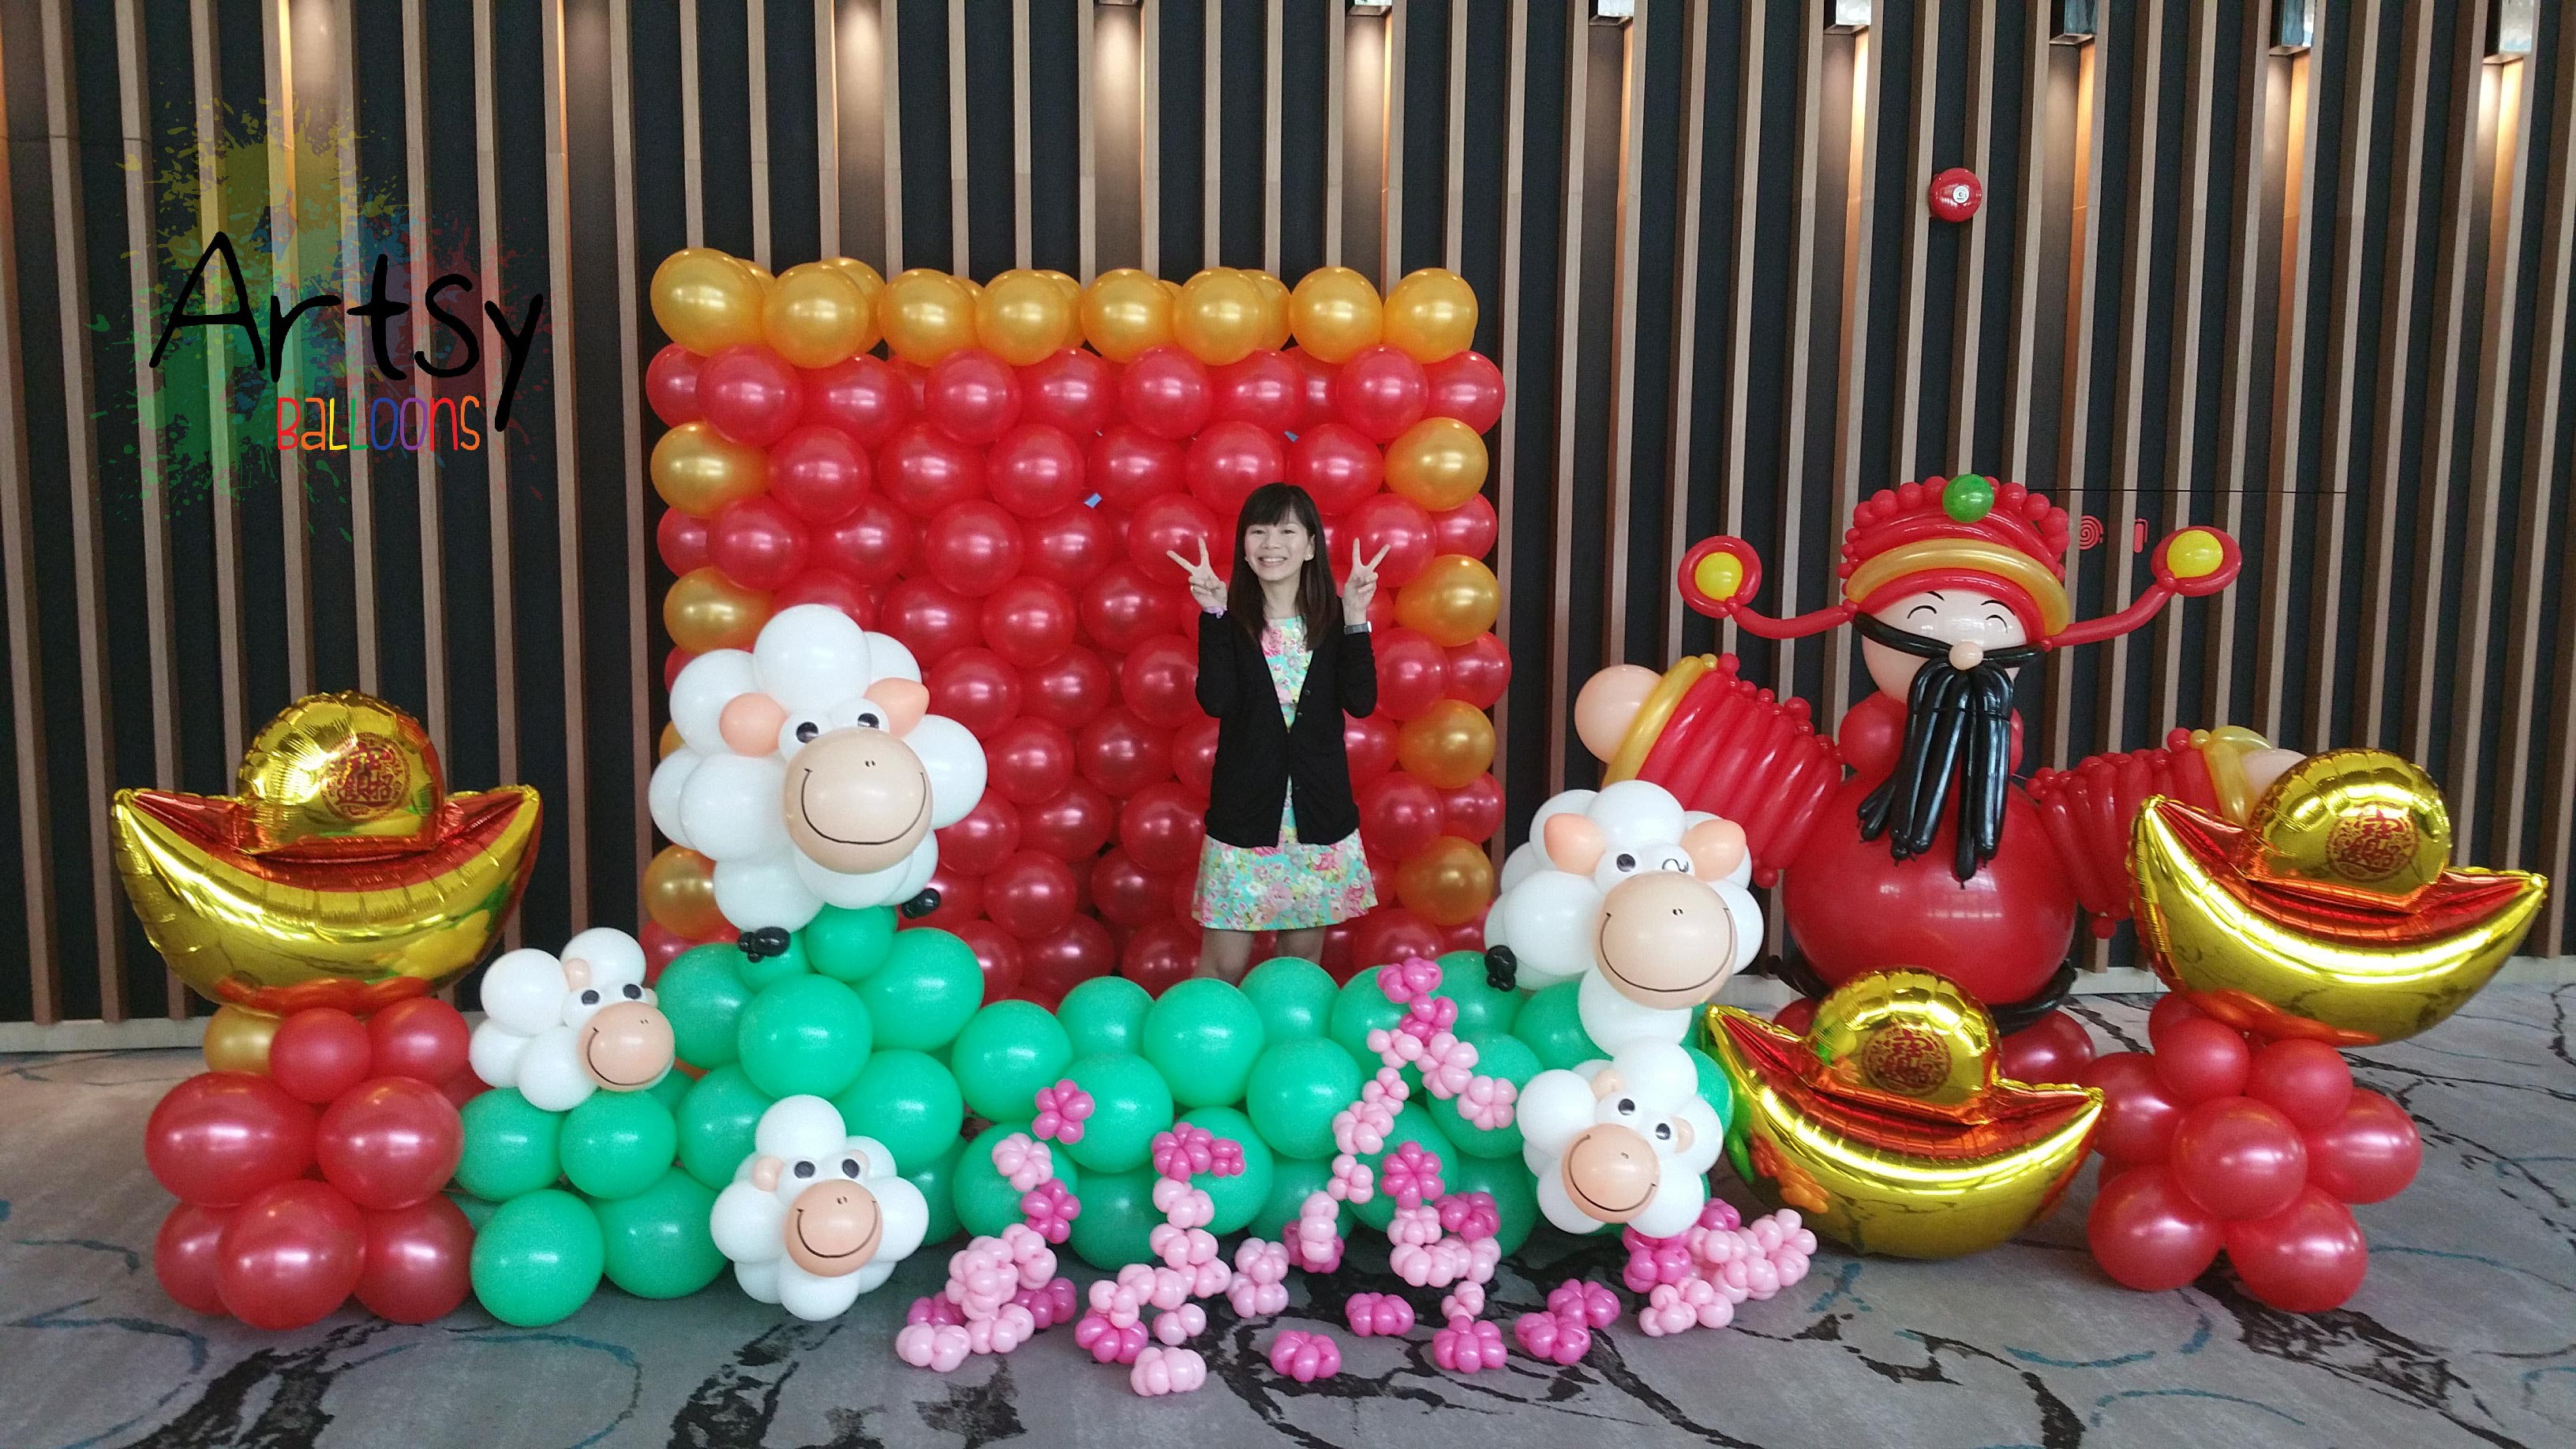 , Singapore Event Planner (Corporate), Singapore Balloon Decoration Services - Balloon Workshop and Balloon Sculpting